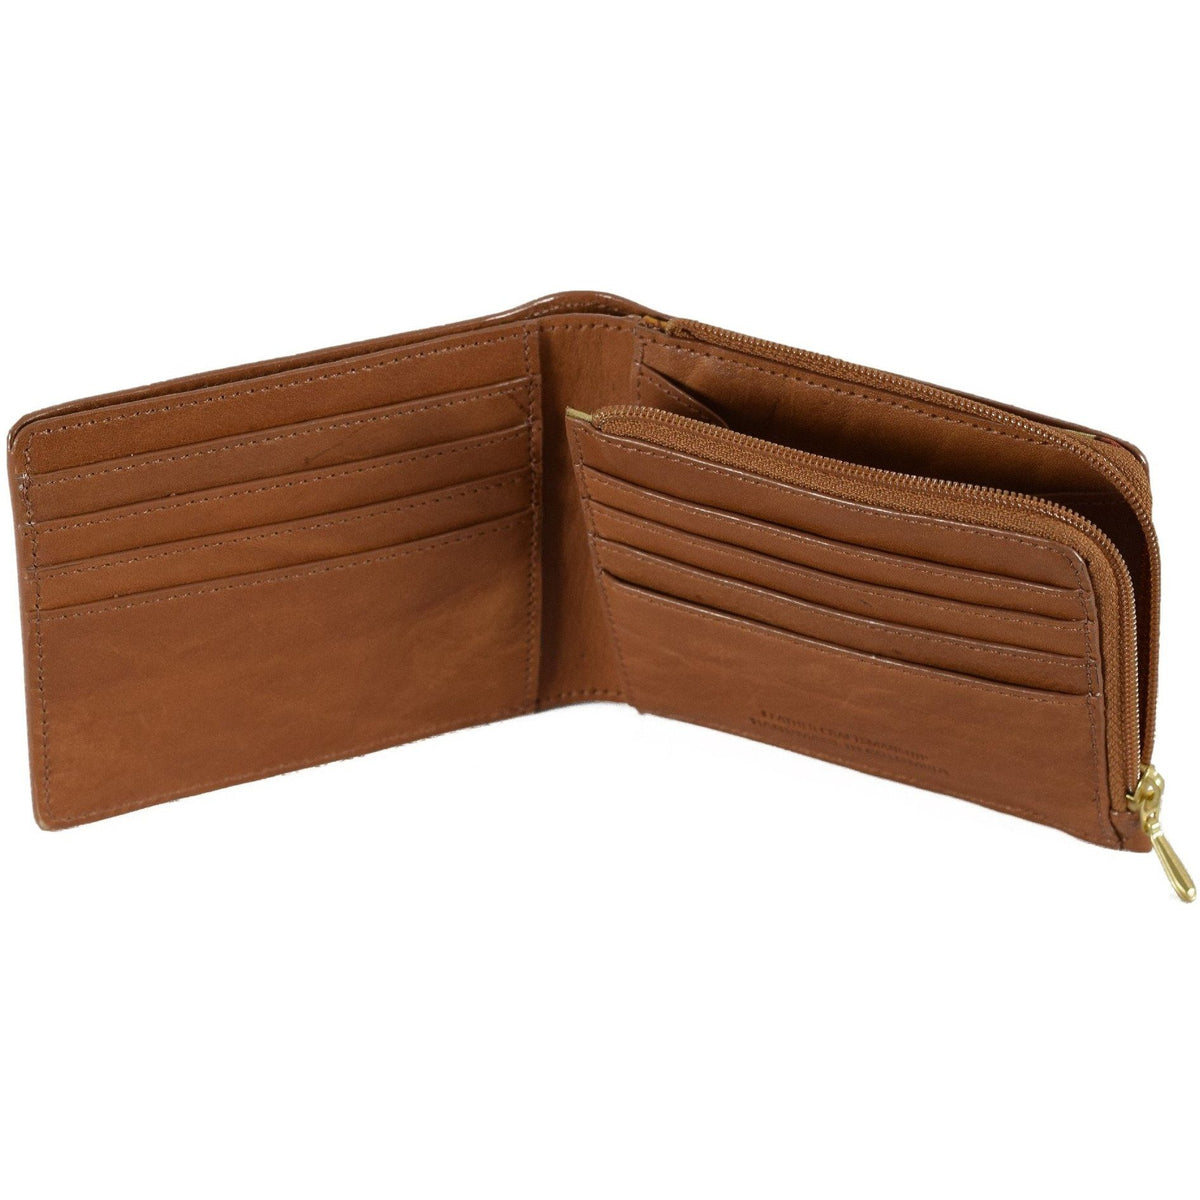 Limited Zip Around Wallet, Wallet | LAND Leather